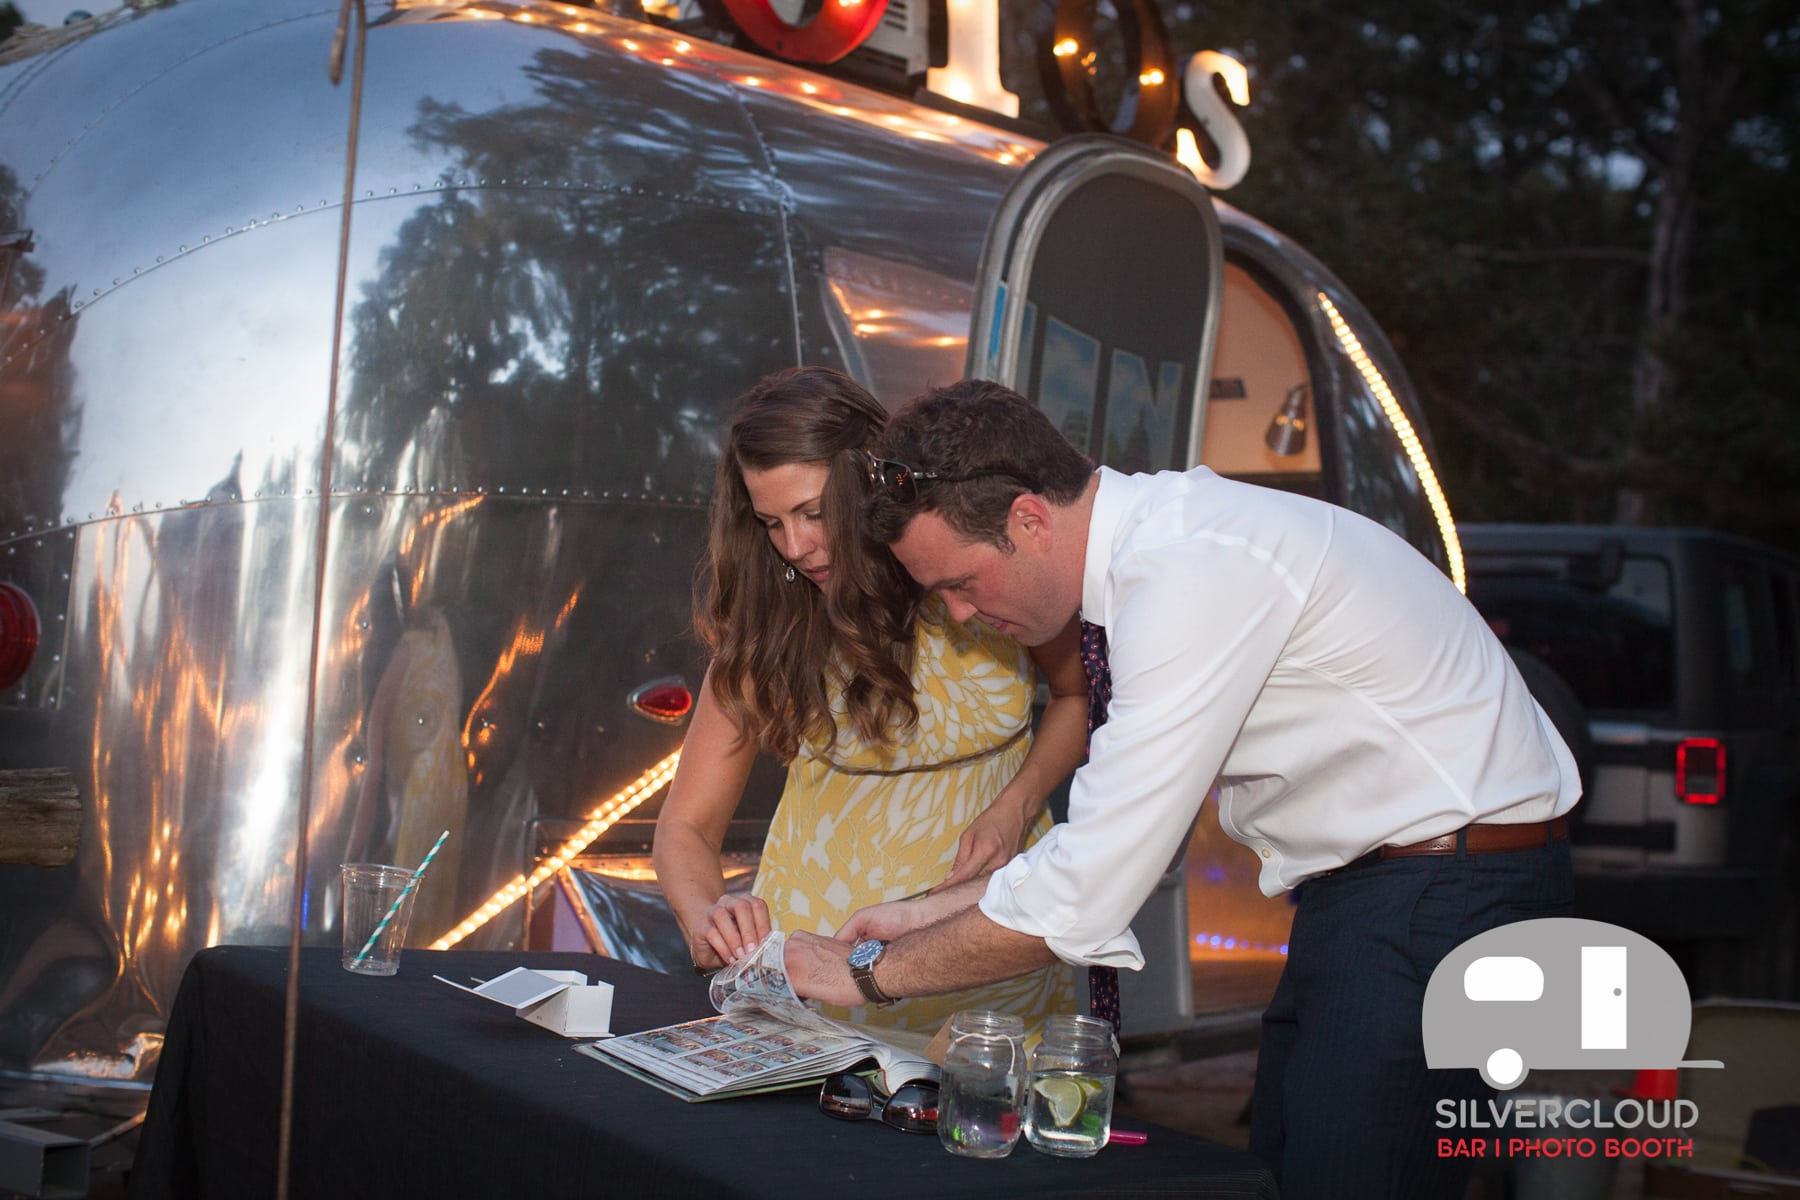 Guests write notes to the bride and groom outside the Silvercloud photo booth trailer